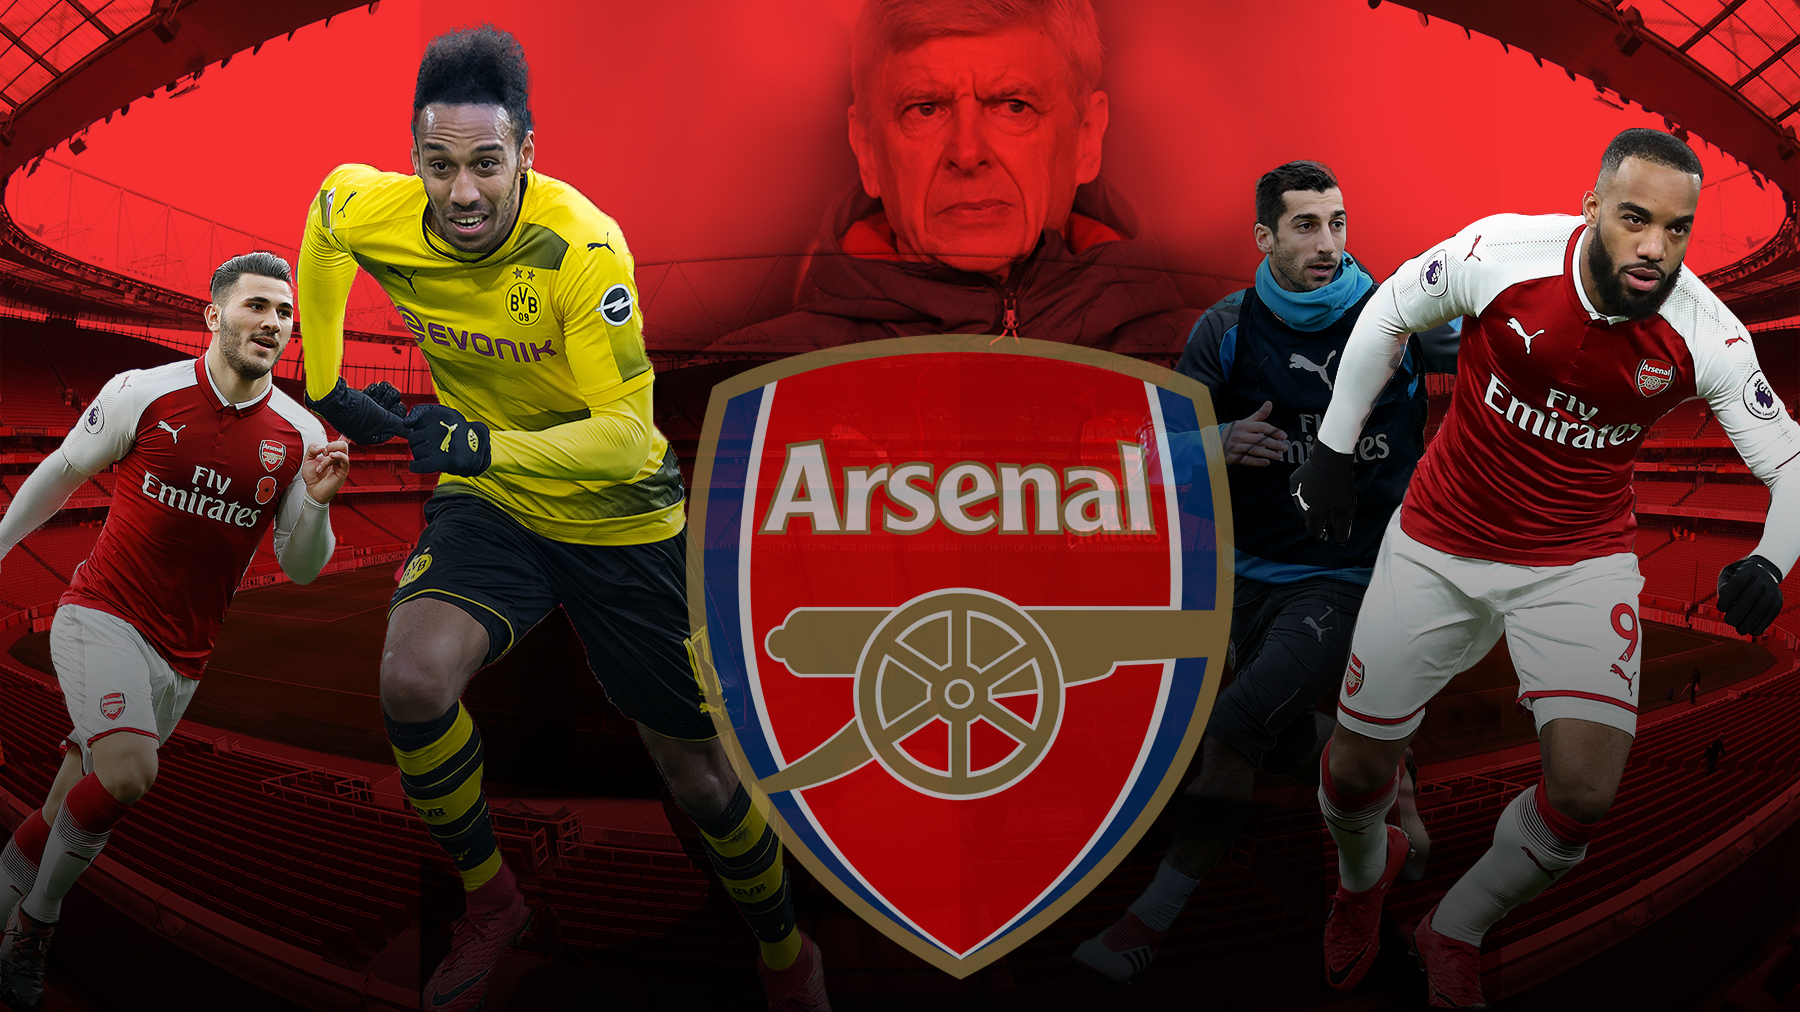 Where will Aubameyang fit in at Arsenal and which players will his arrival affect most?